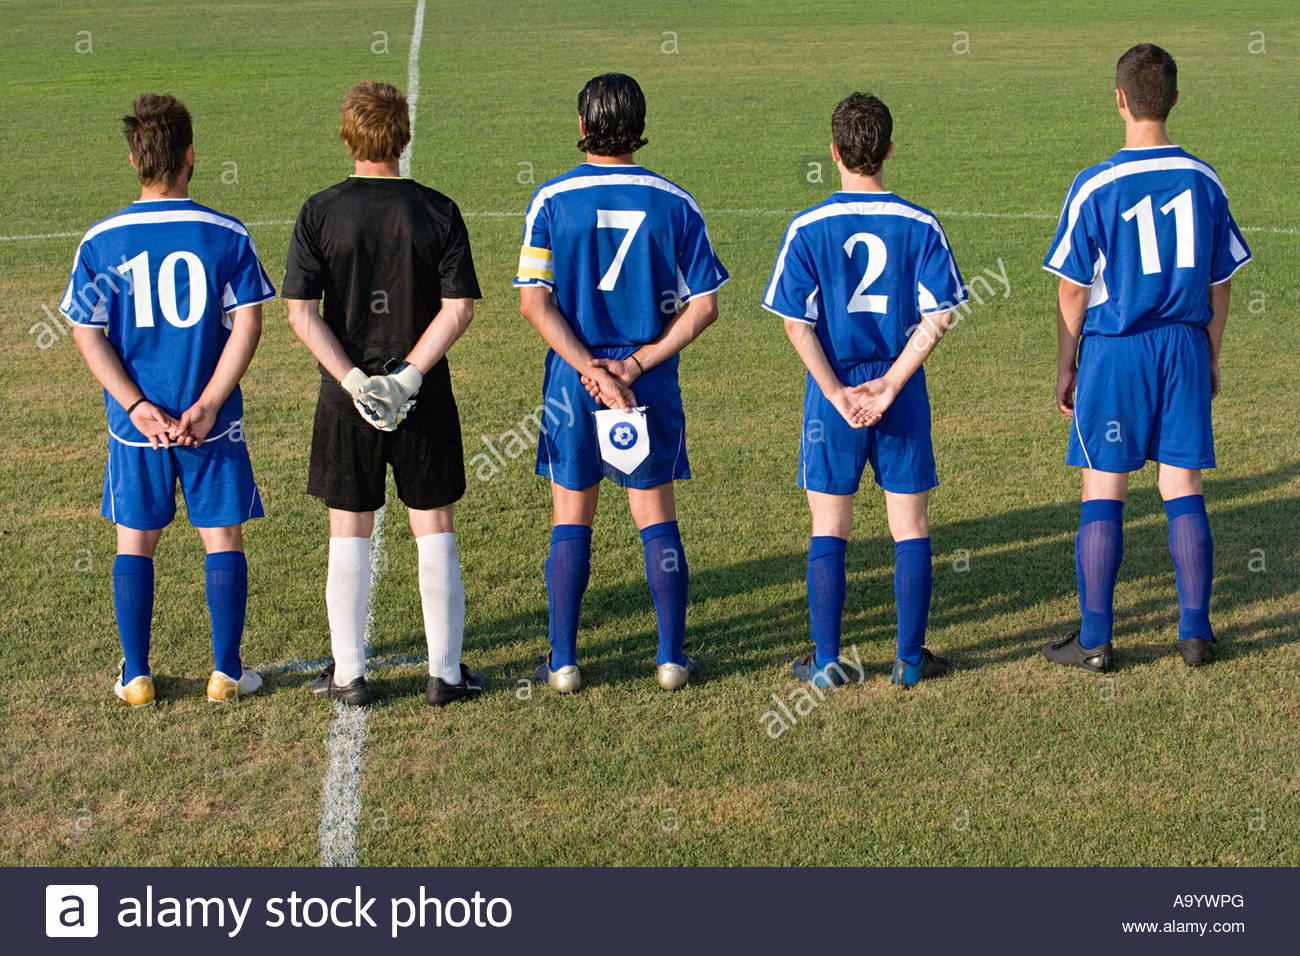 Football team in a row - Stock Image